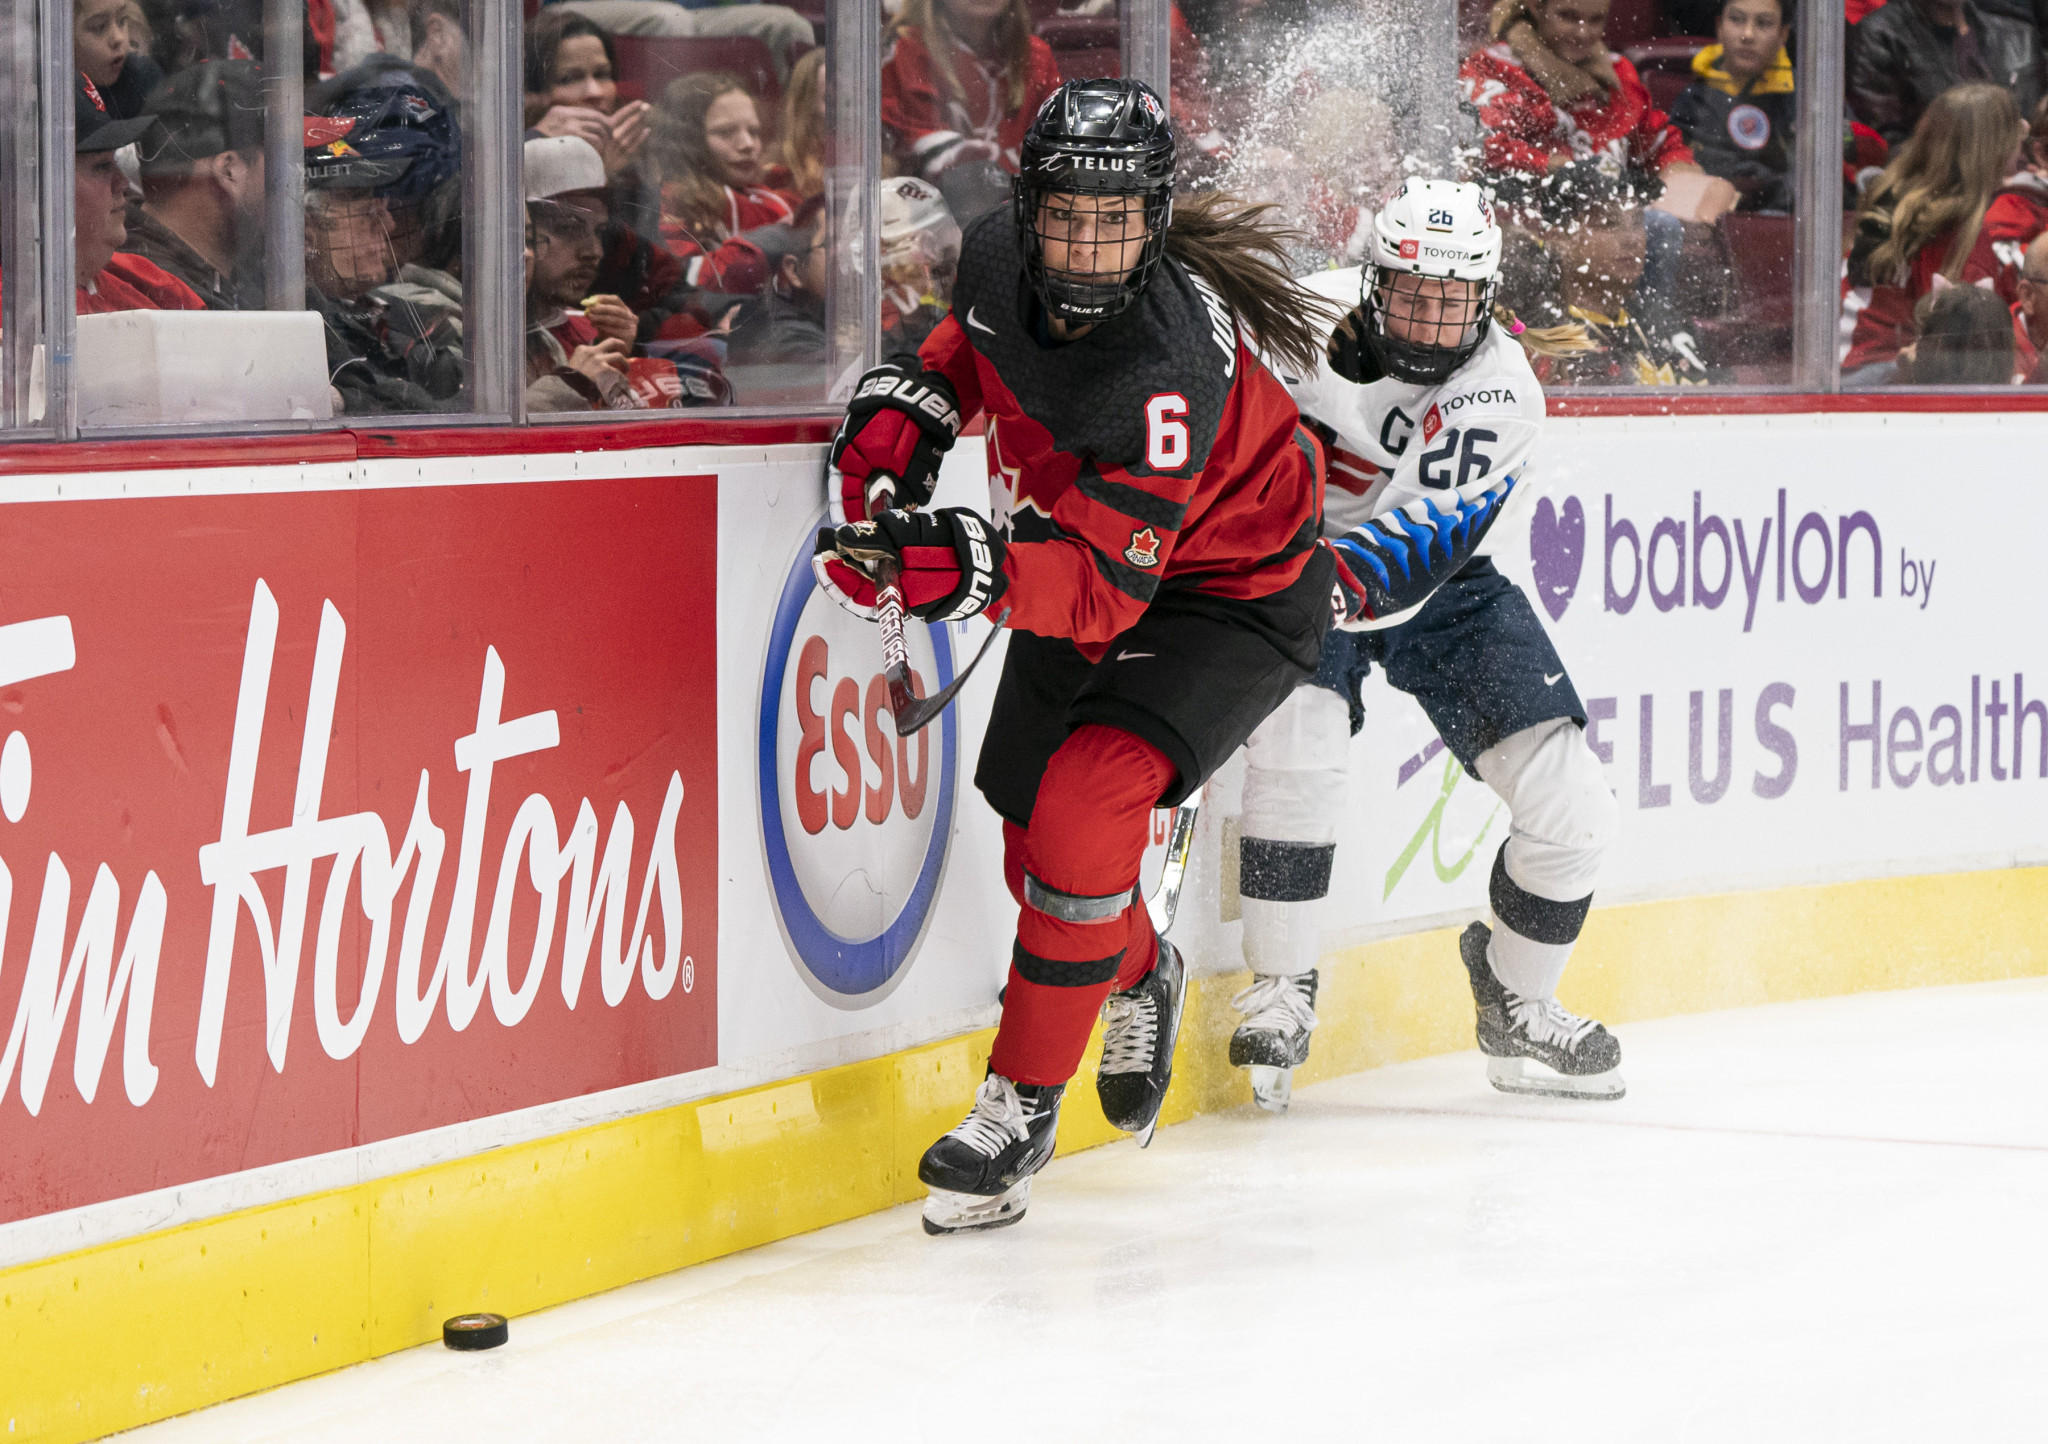 IIHF confirms new dates for Women's World Championship as venue search continues